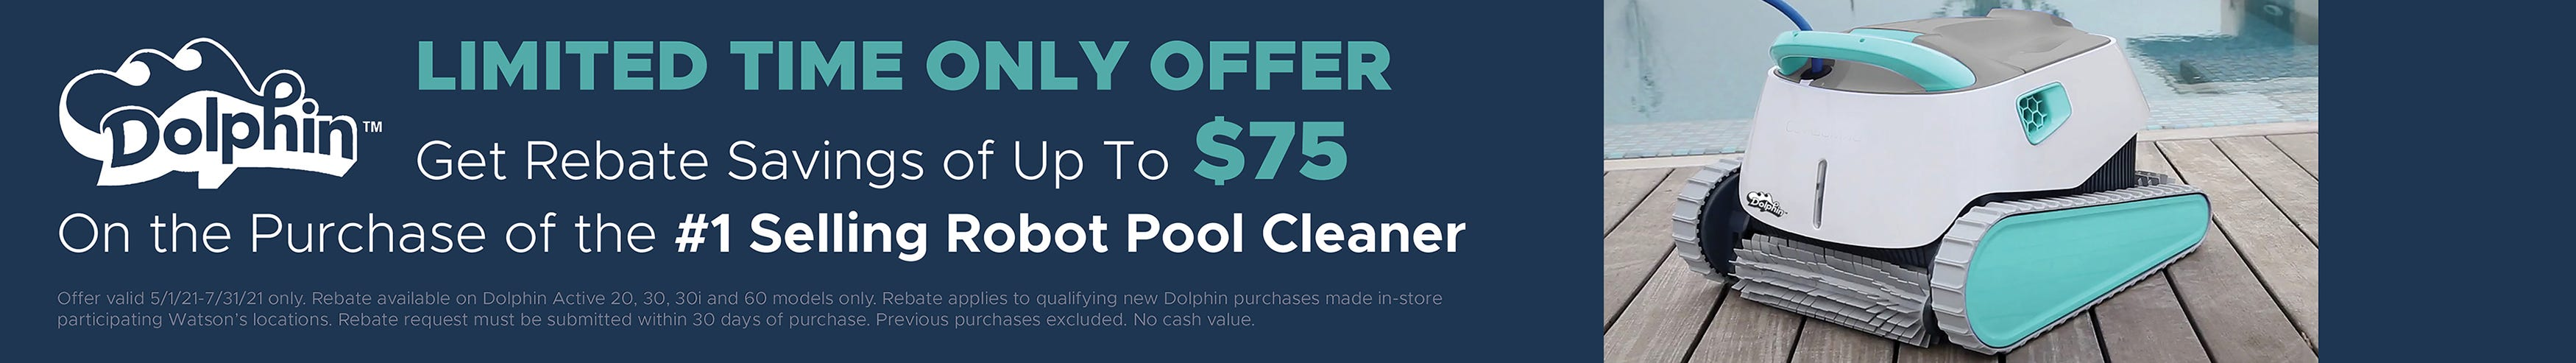 Limited Time Only Offer. Get a $75 Rebate on the Purchase of Select Dolphin Robotic Pool Cleaners. Offer expires 7/31/21.